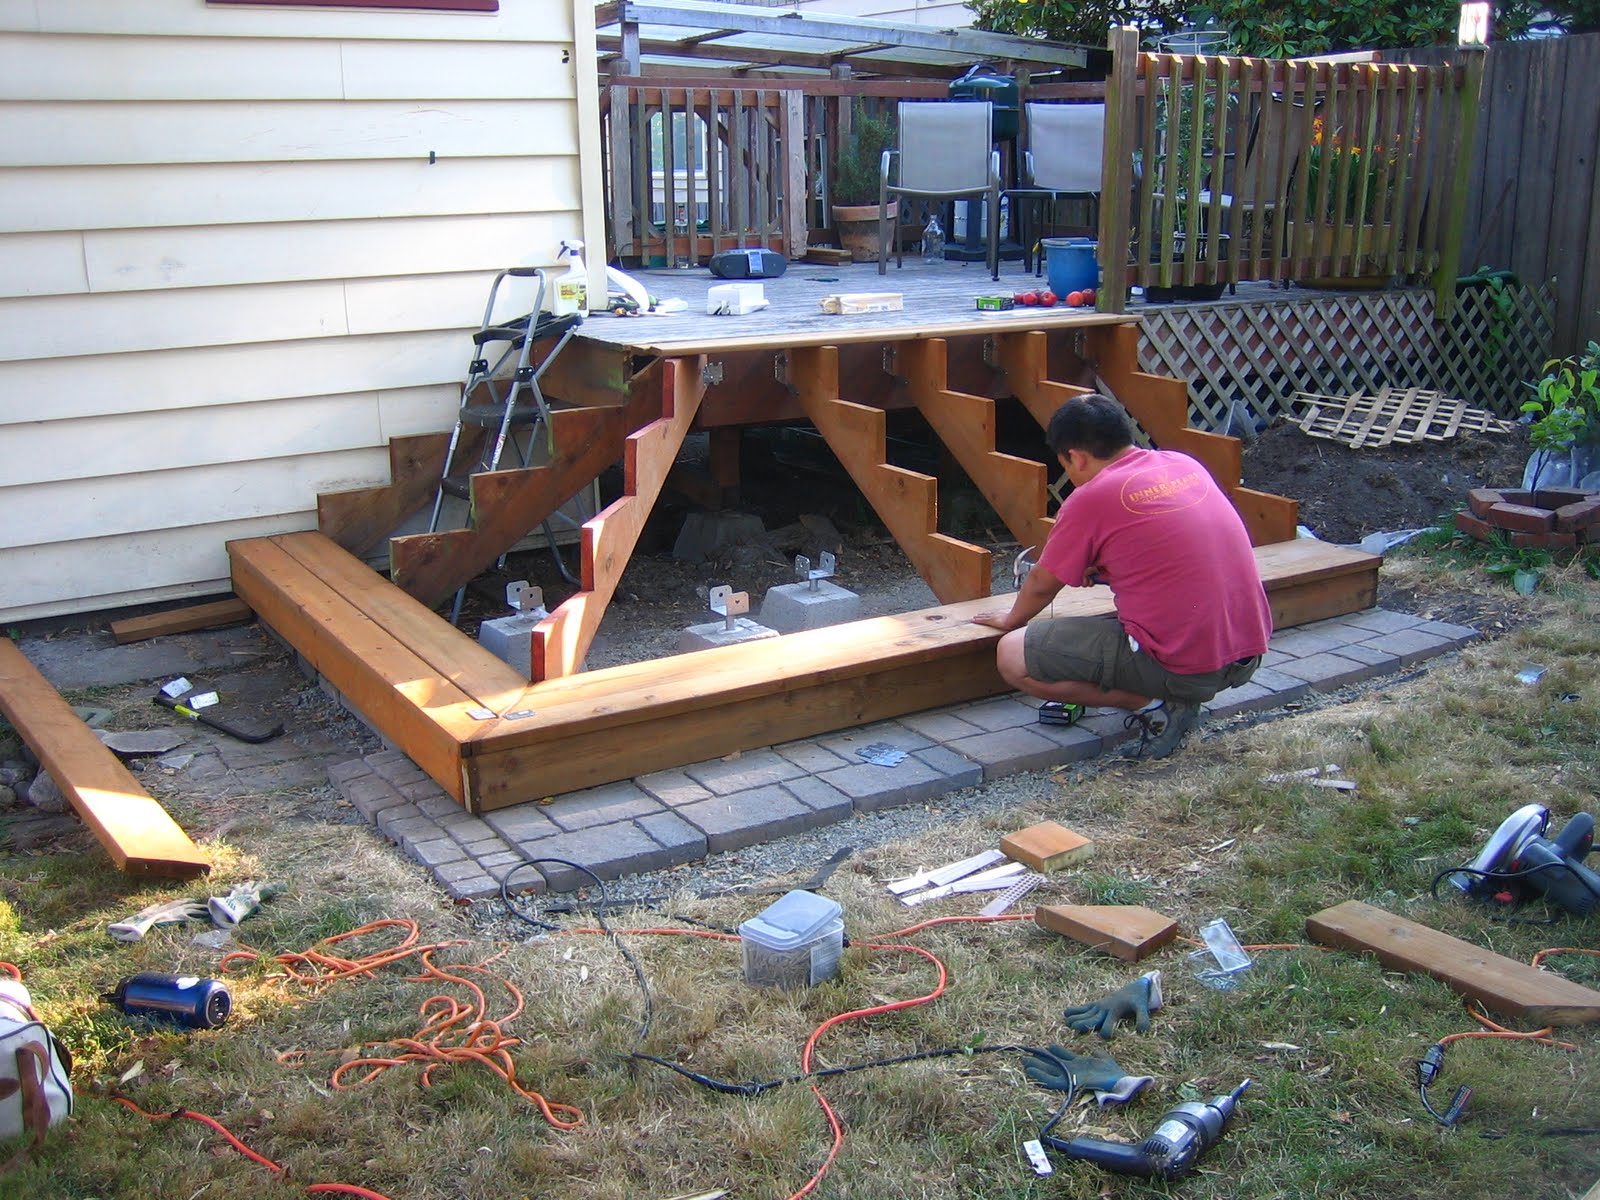 Build Wood Deck Stairs And Landing: Ballerina Breath: That Quote Is Silly, Let's Just Do It